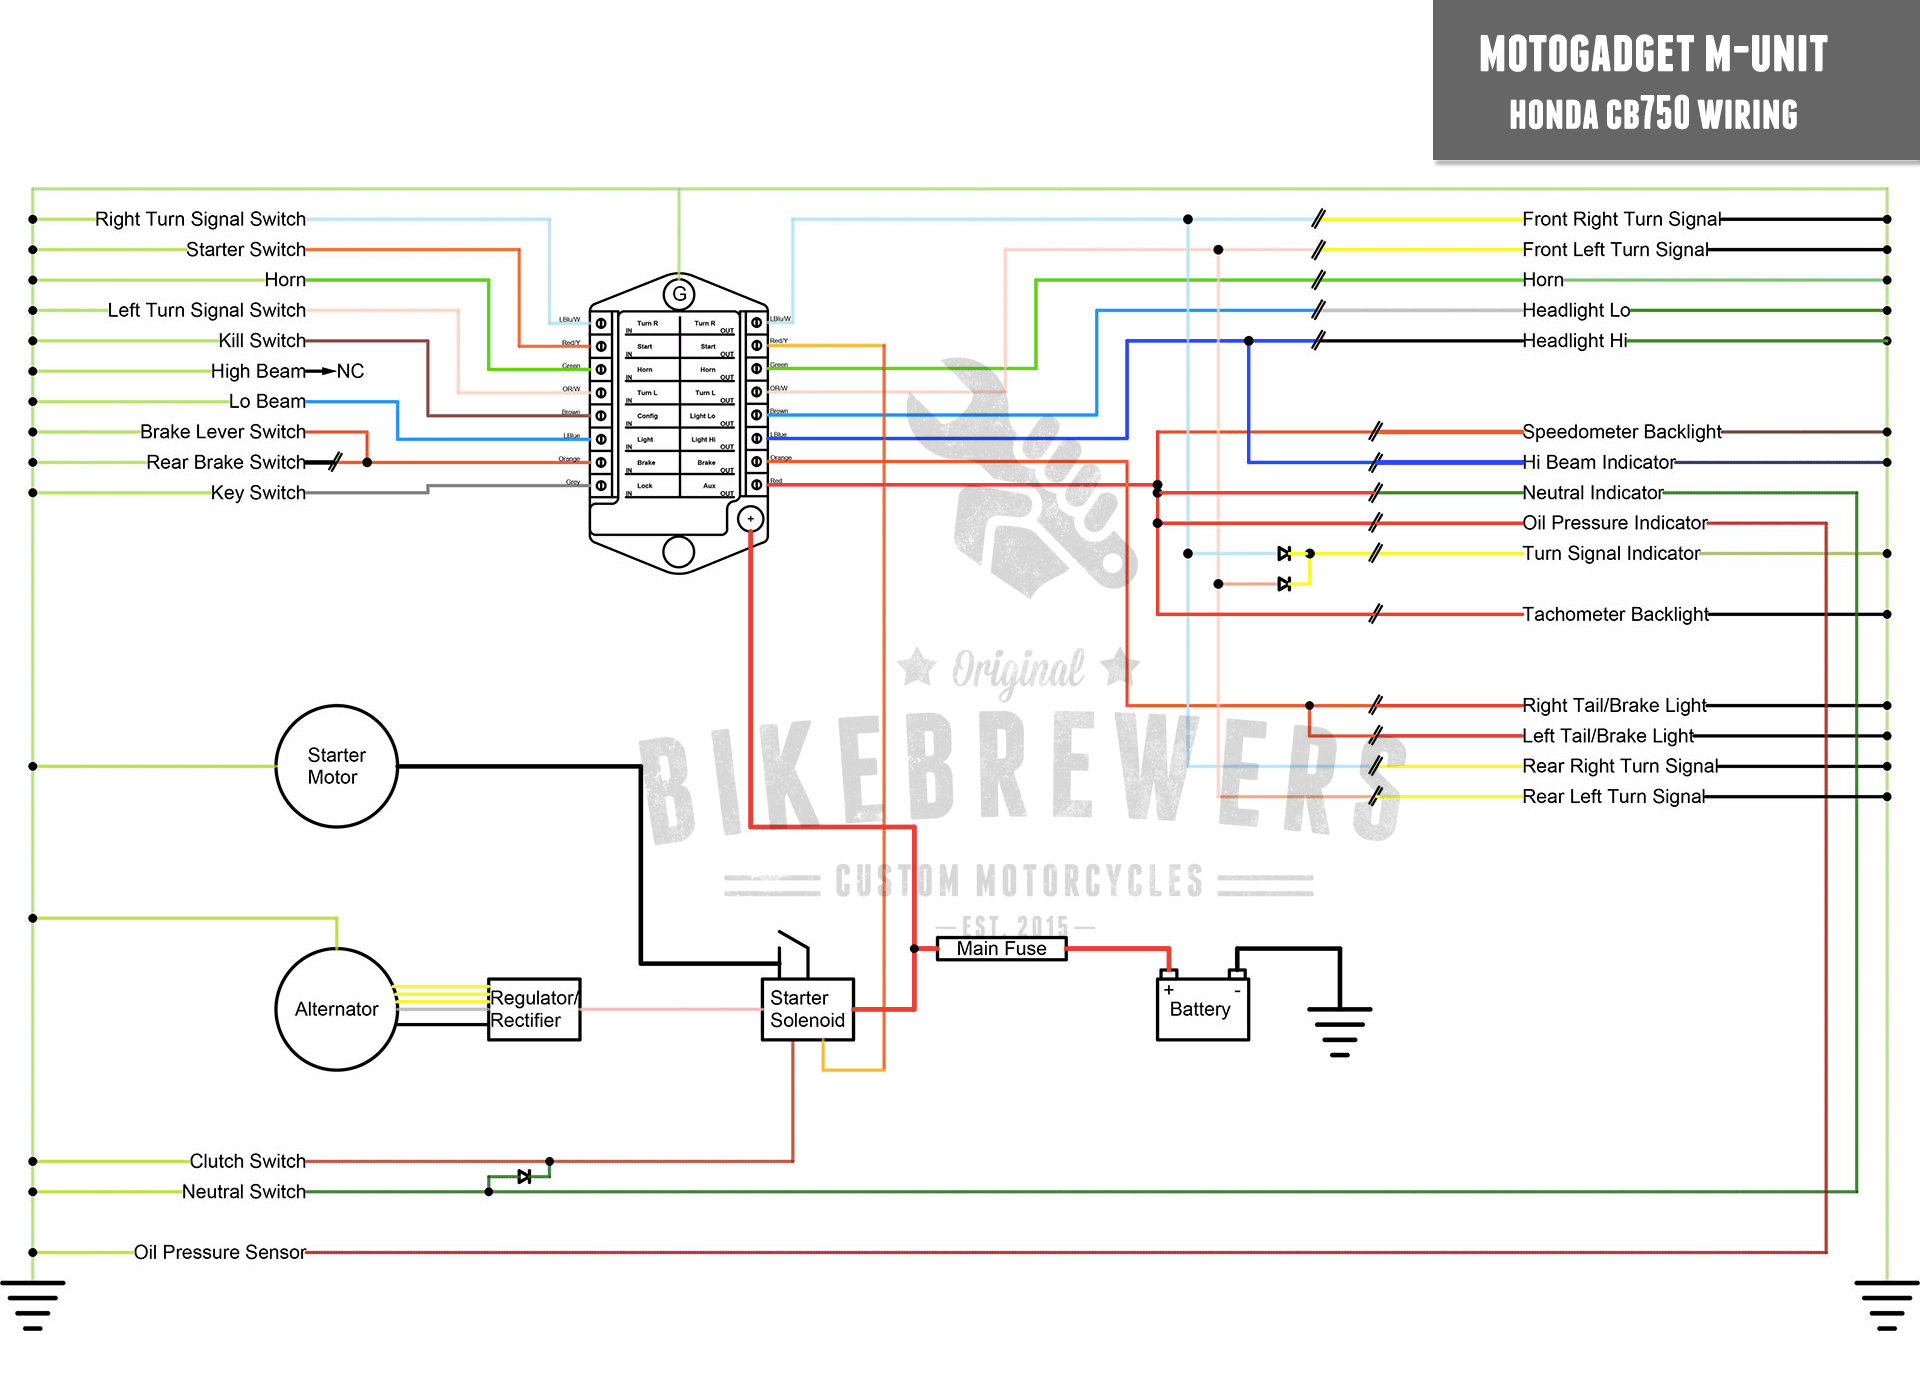 Neutral Switch Wire Ural Center High Beam Wiring Diagram Motogadget M Unit Bikebrewers Com Rh Breaker